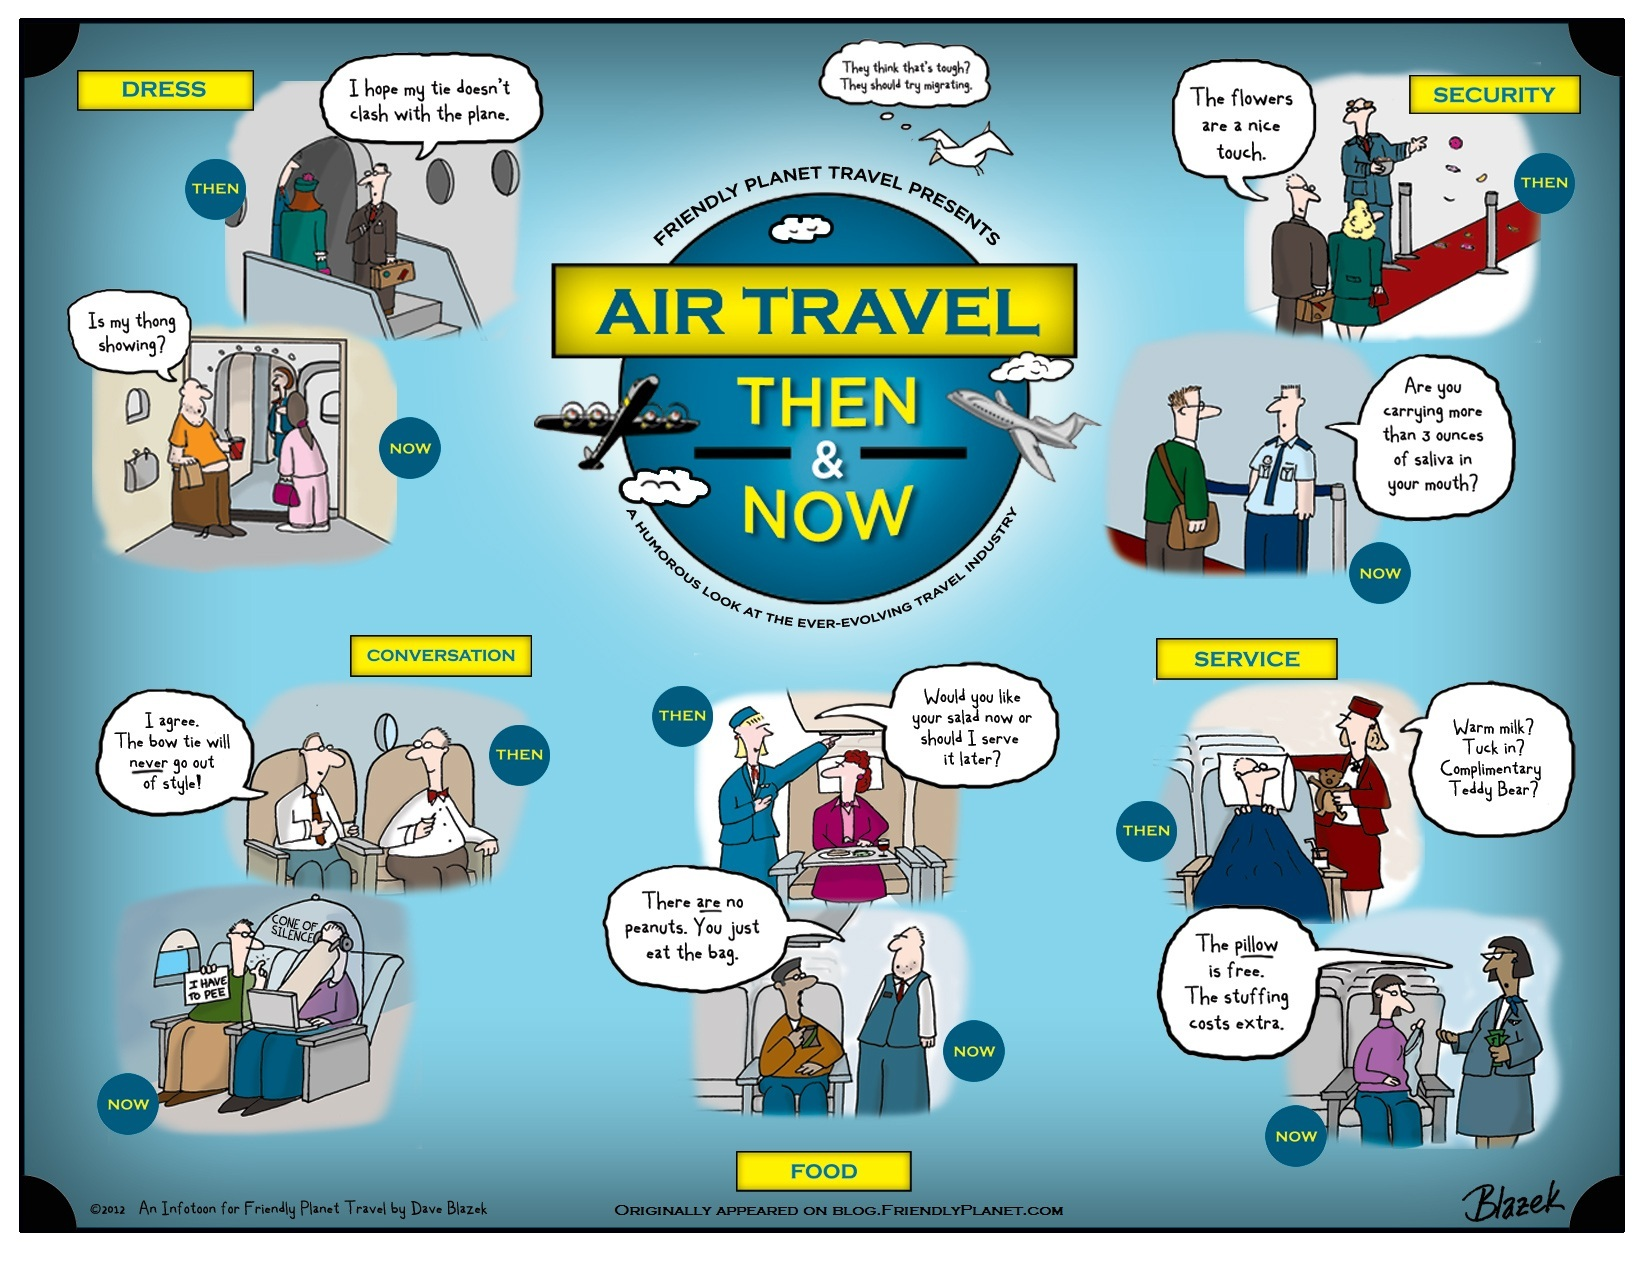 Air travel then vs air travel now